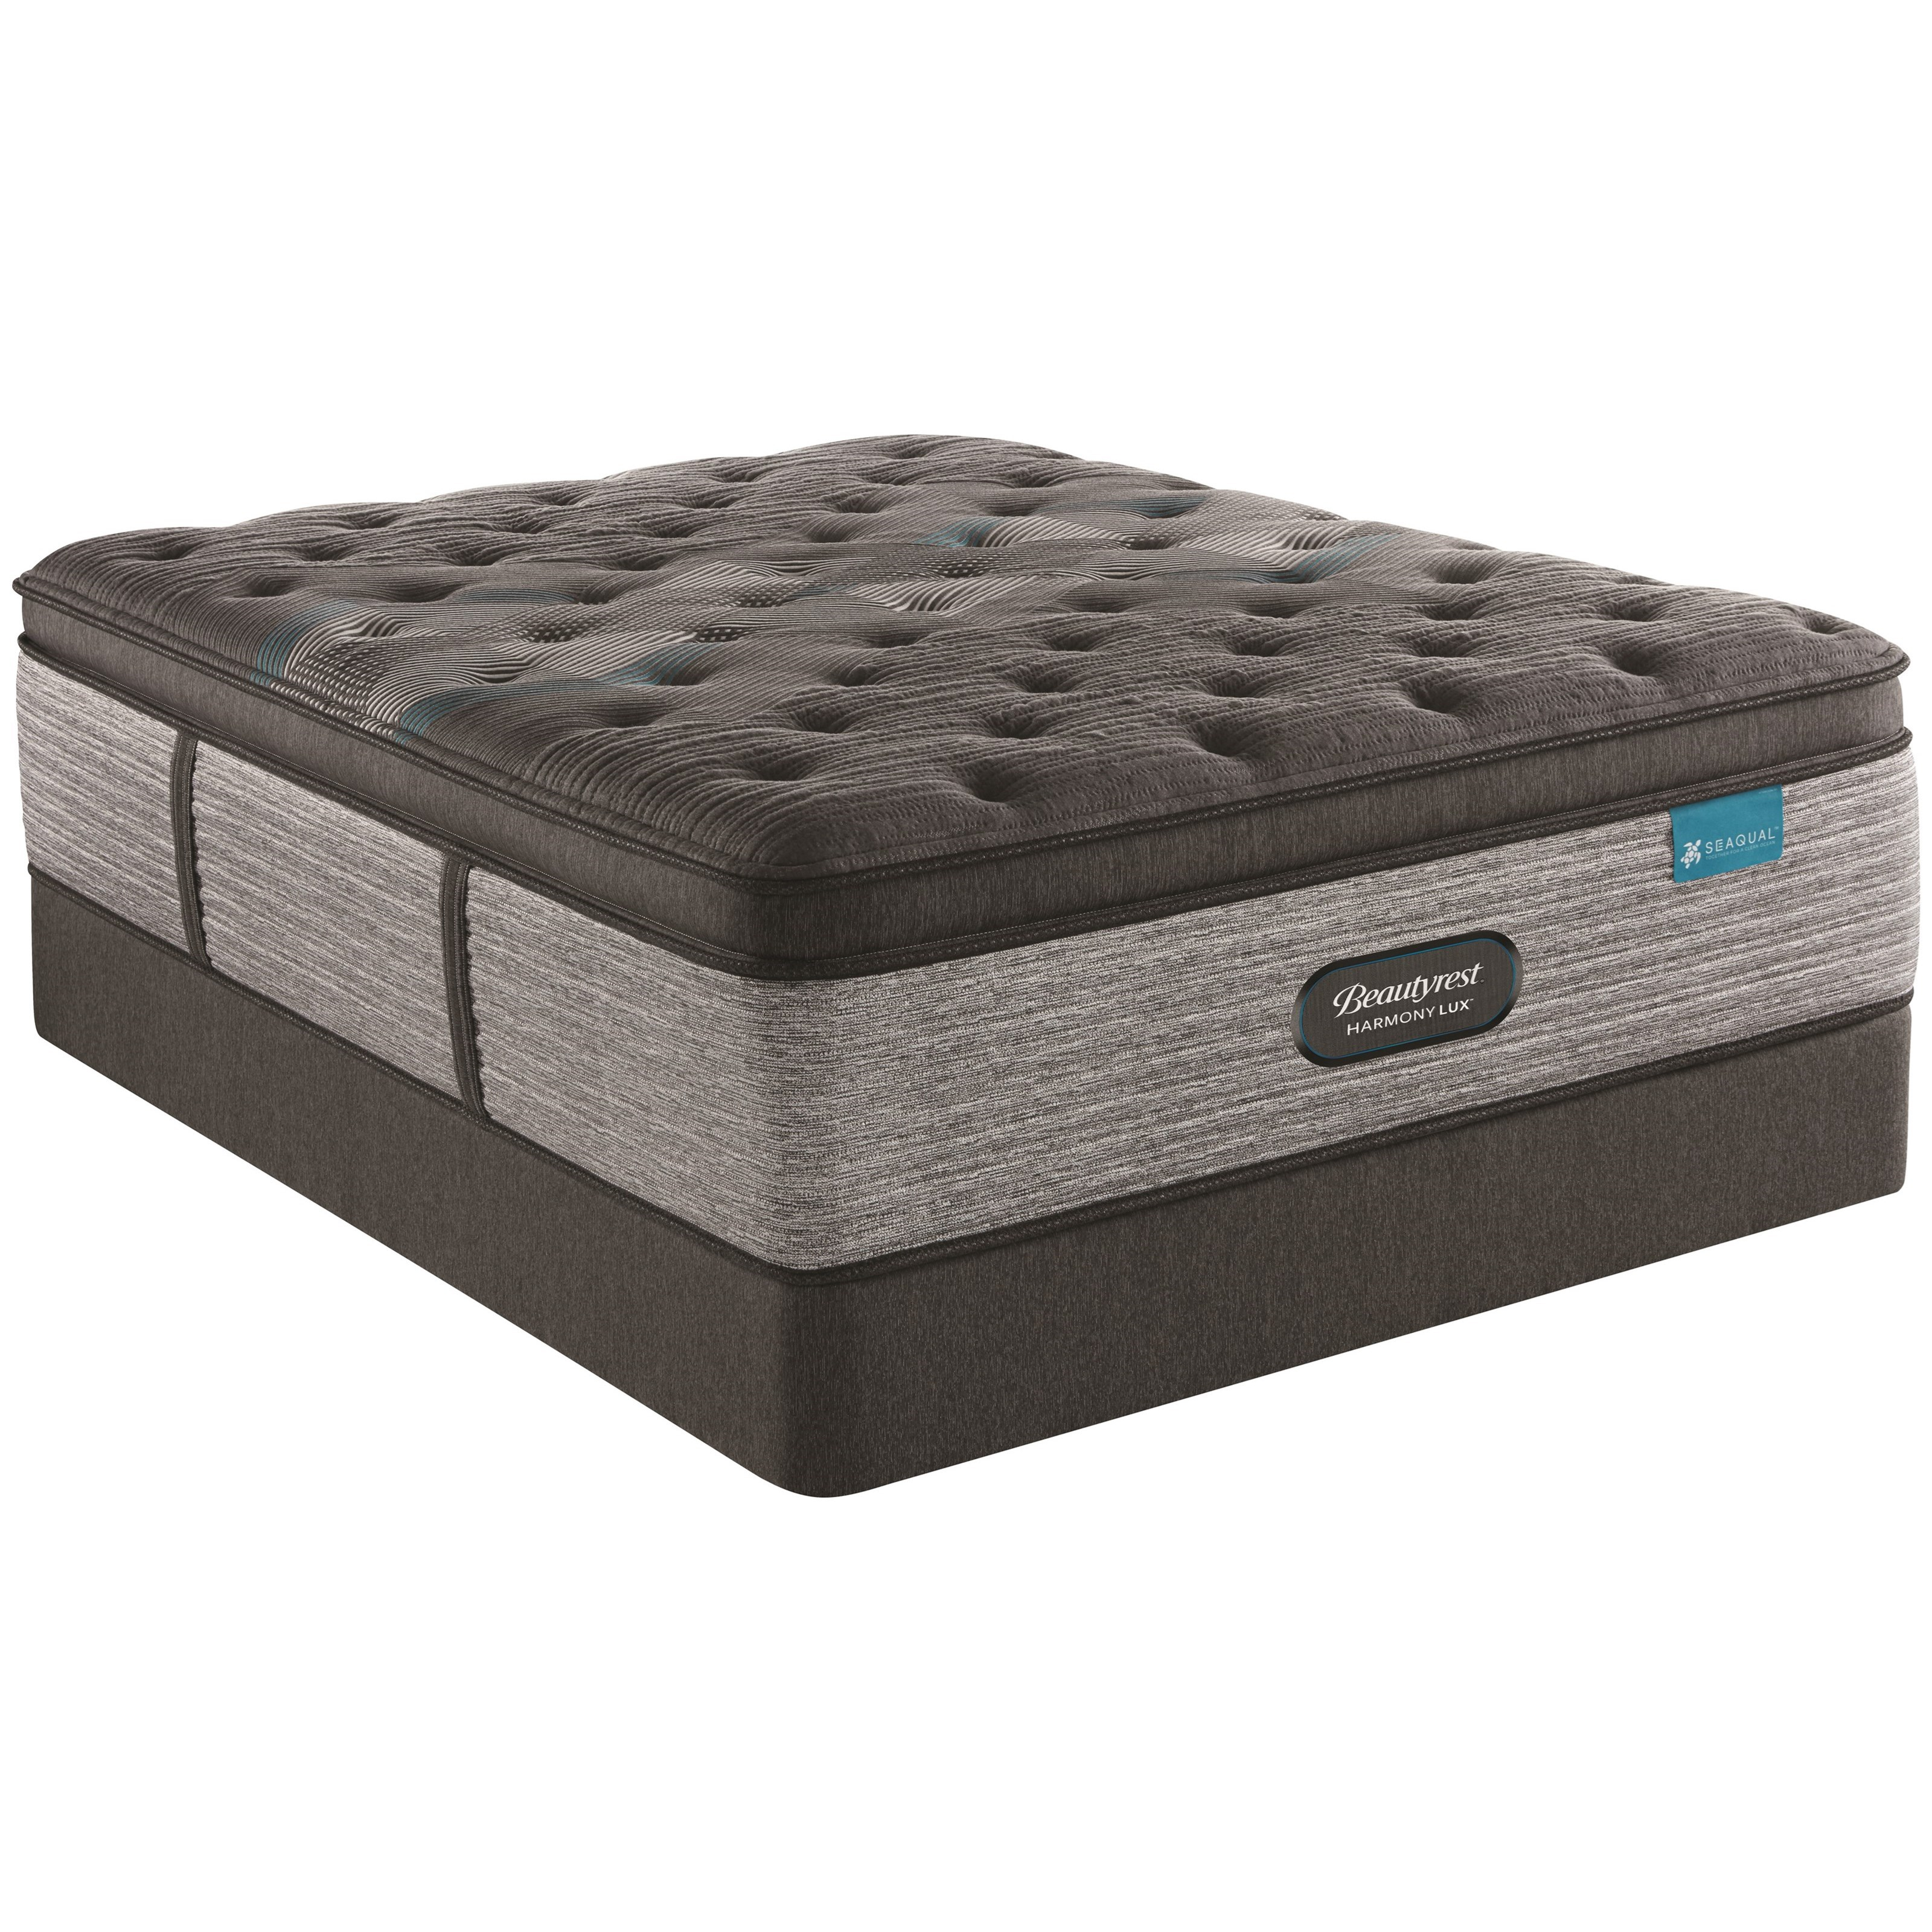 "Diamond Series Ultra Plush PT Twin XL 17 1/2"" Ultra Plush PT Set by Beautyrest at Rotmans"